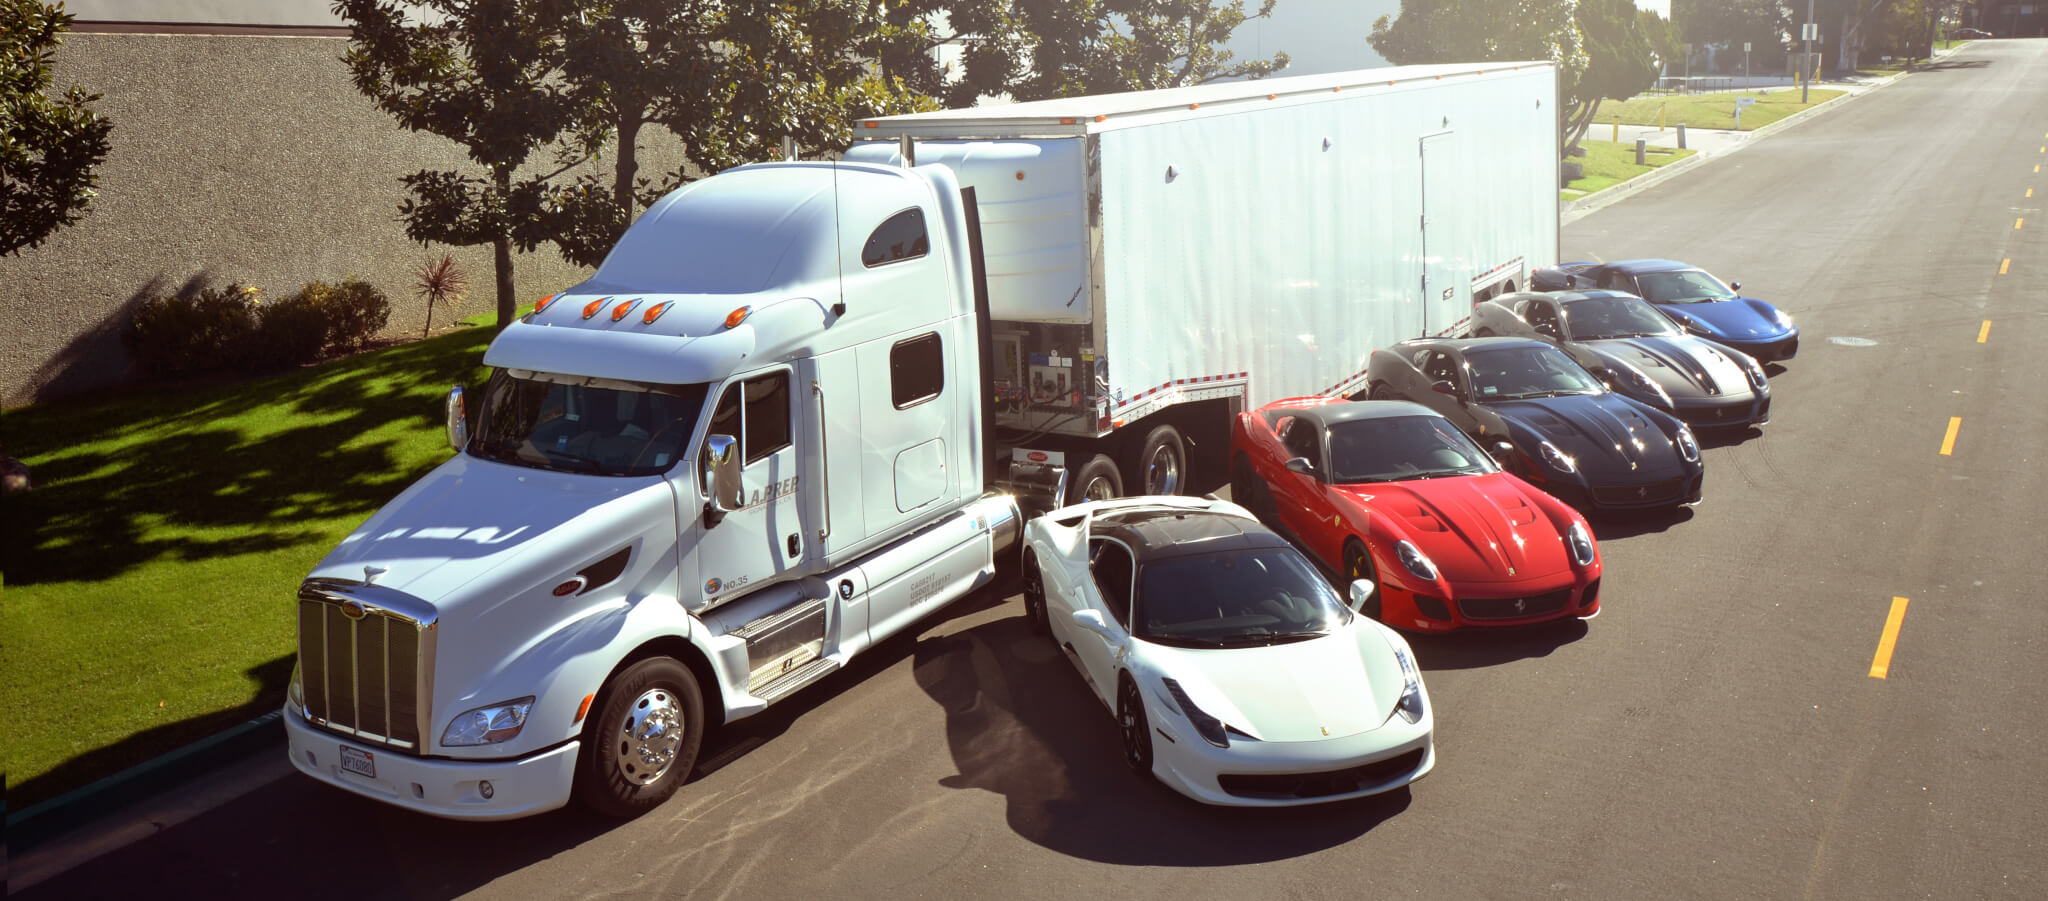 Best Car Transportation : The best way to transport your luxury car interstate